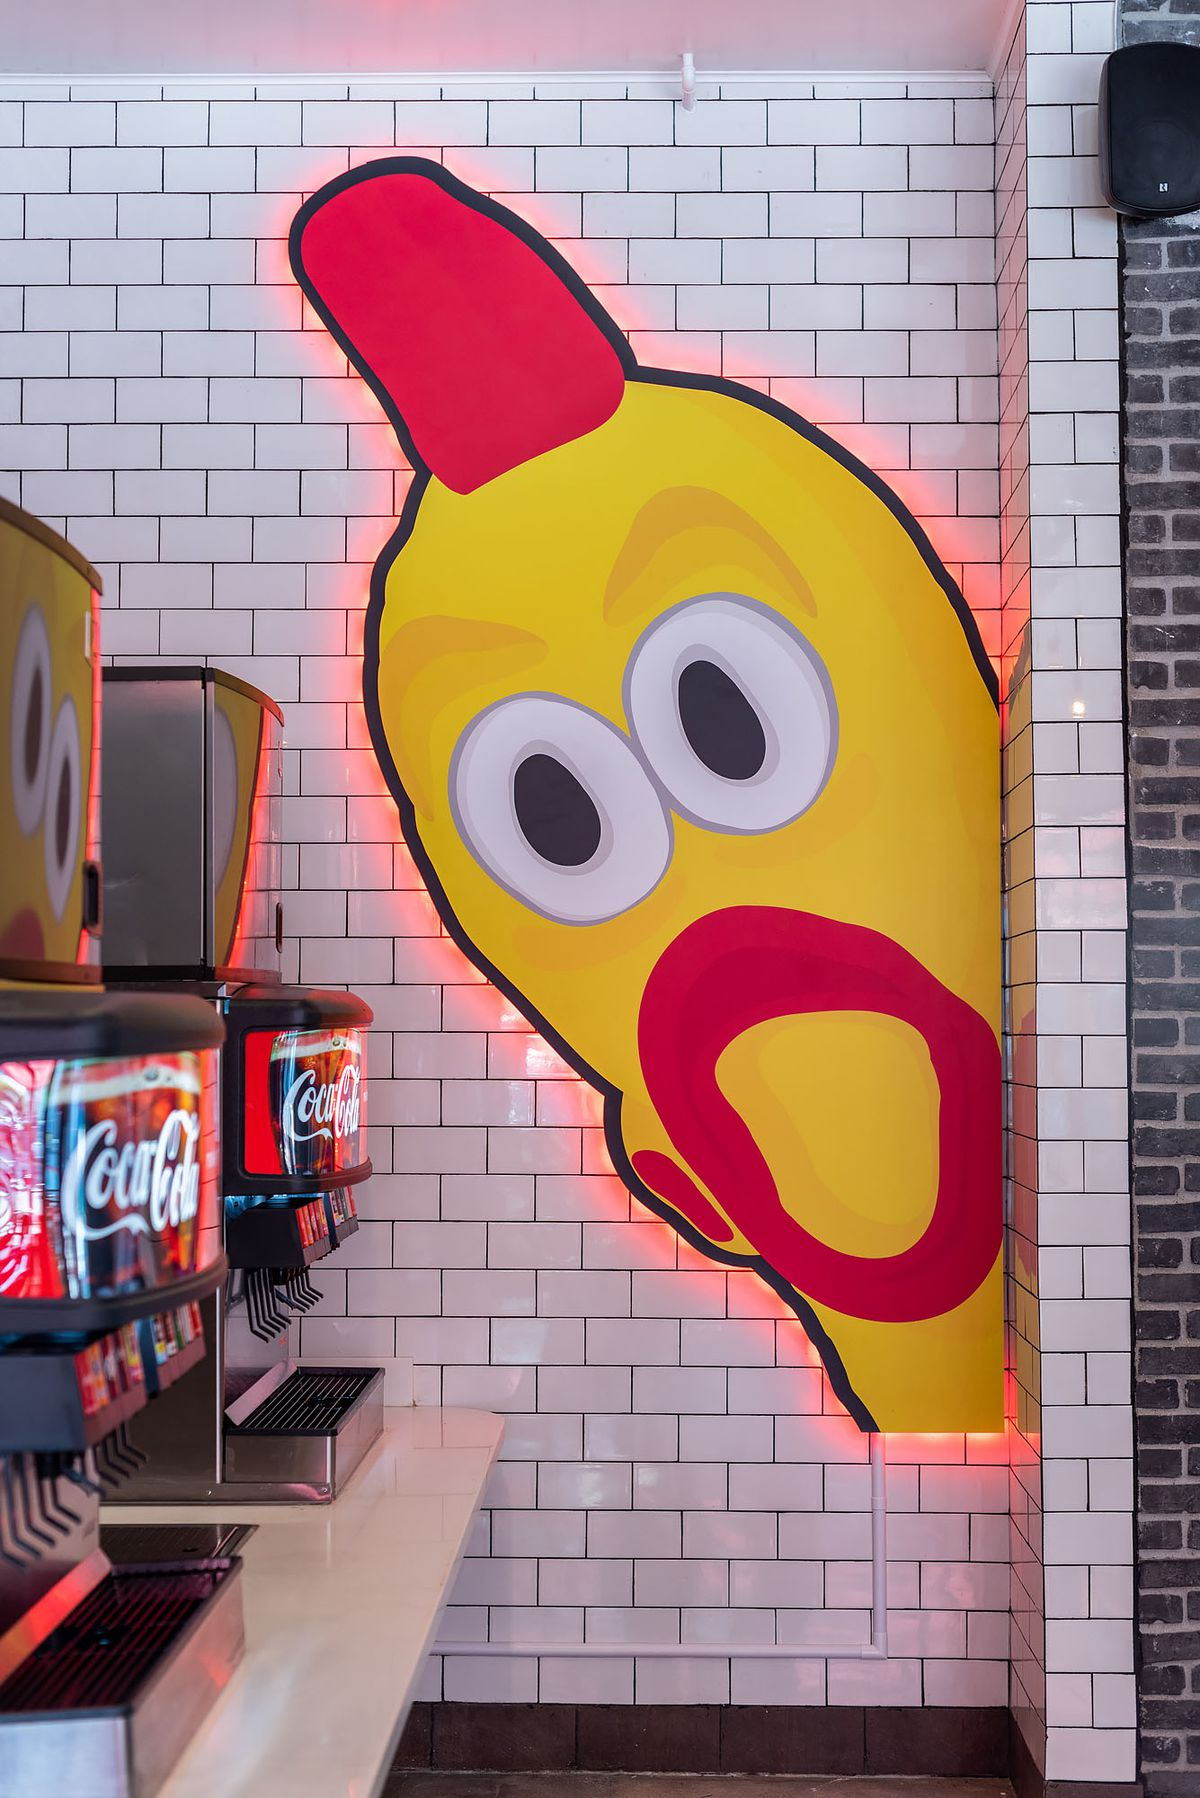 A neon-backed image of a rubber chicken peeks out from a wall inside a restaurant.